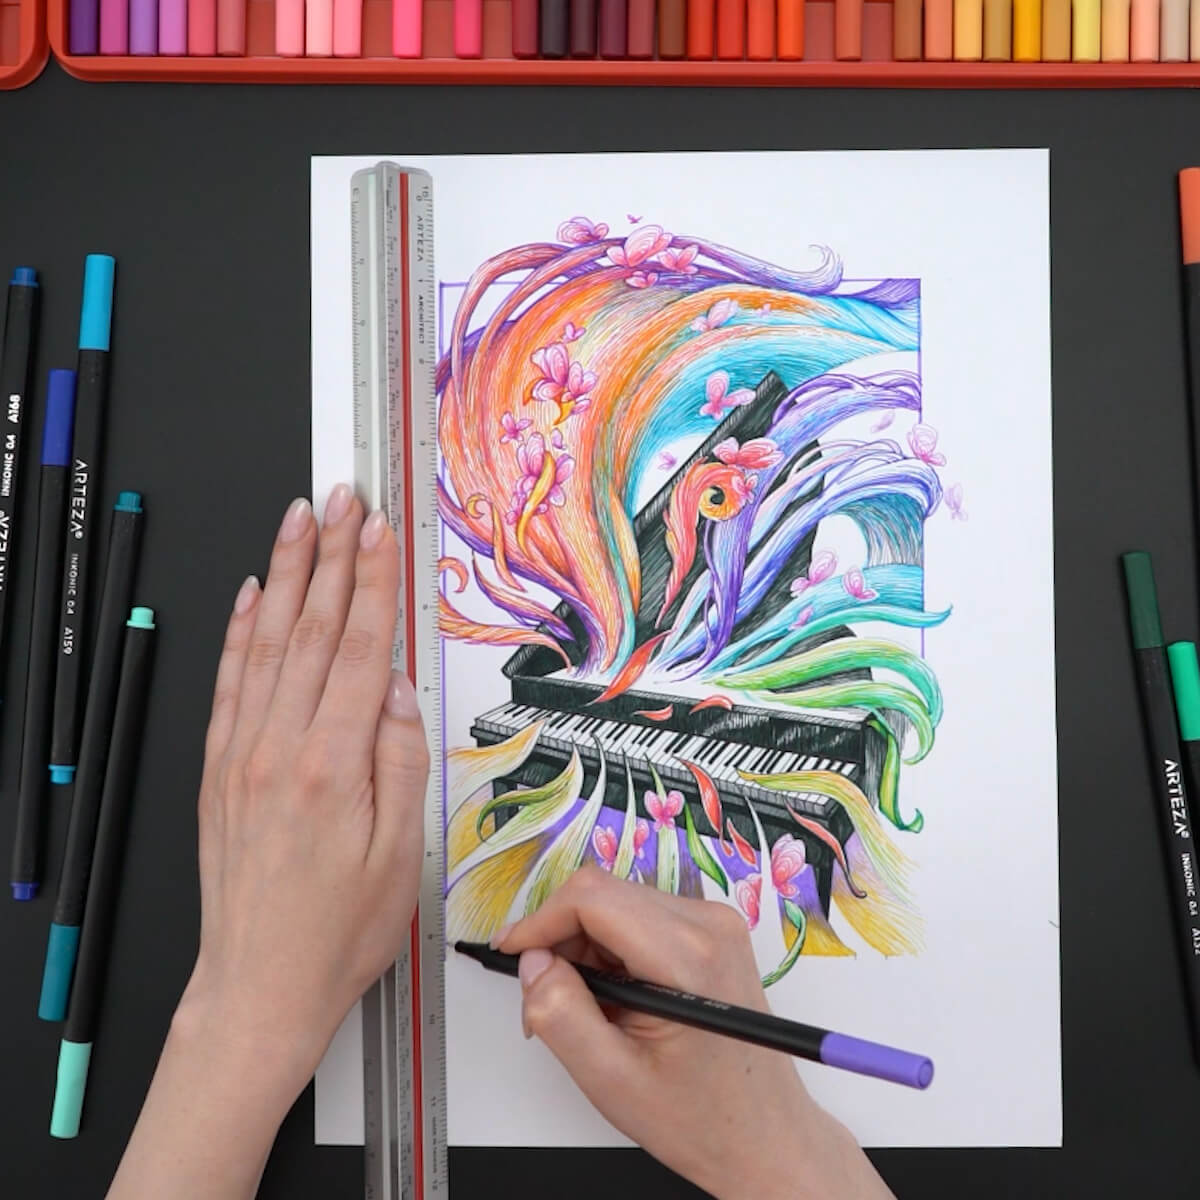 Grand piano drawing